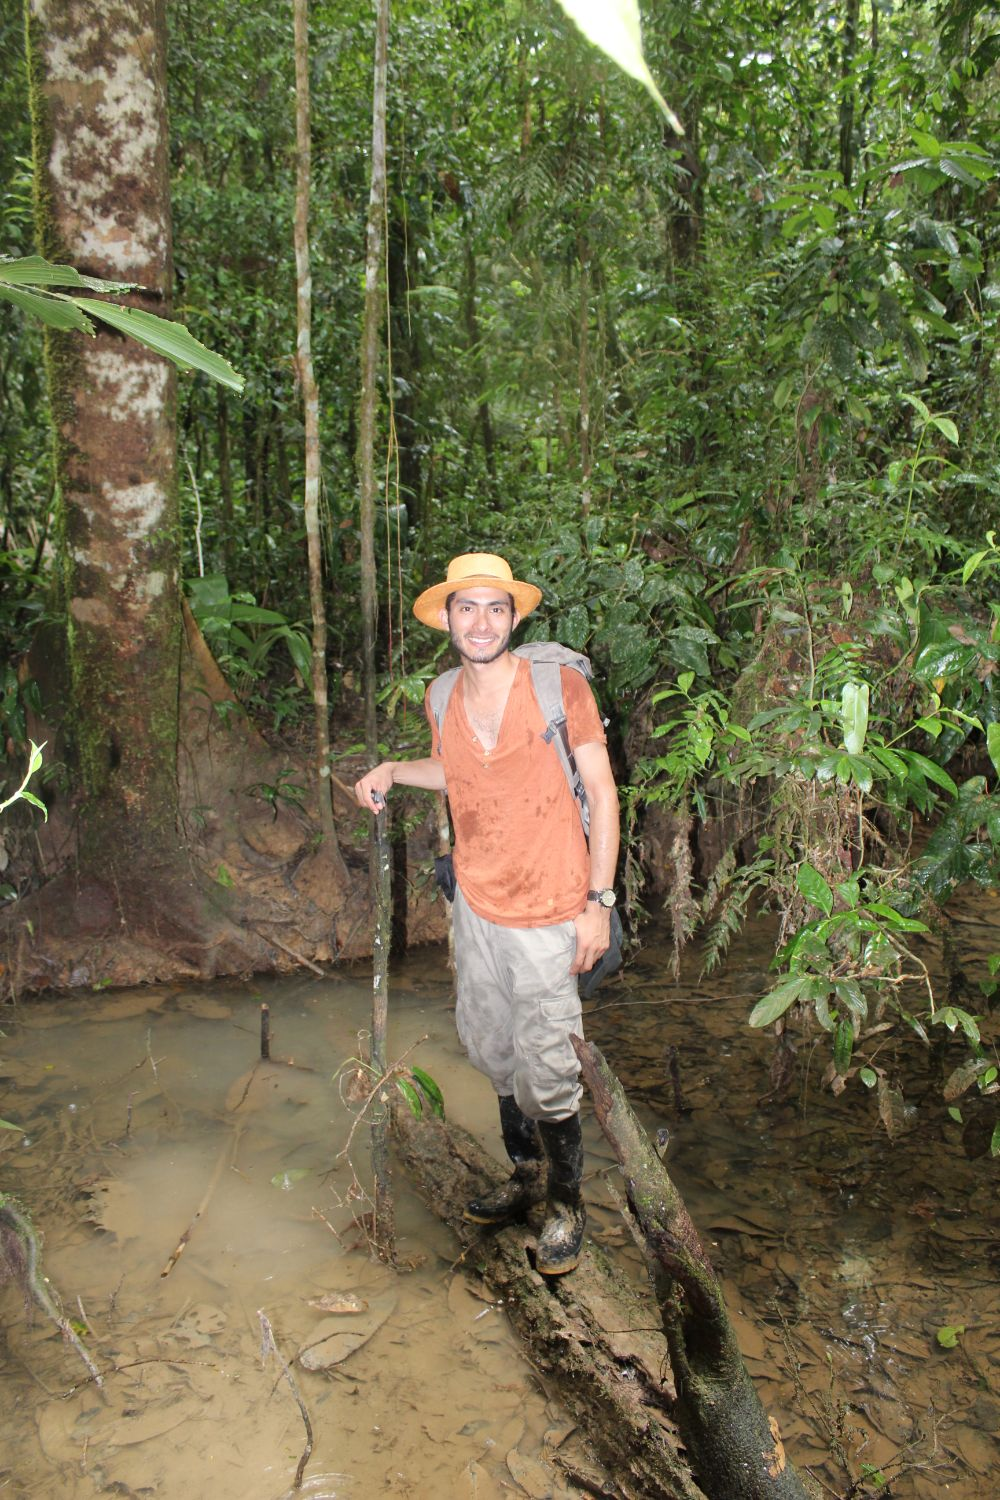 Hiking in Amazon